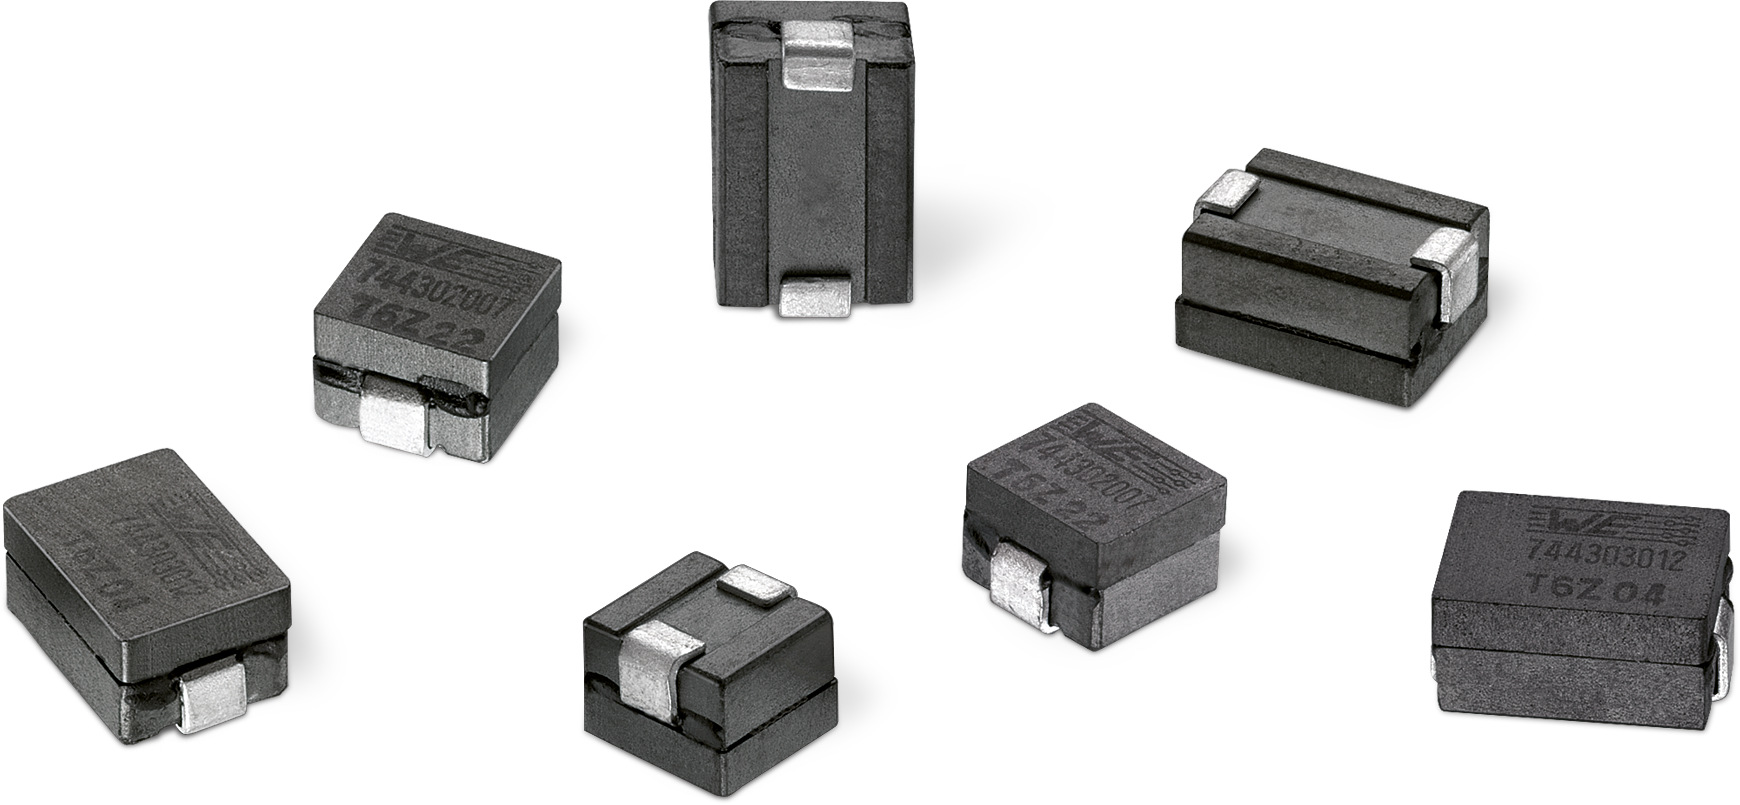 Würth Elektronik extends the high-current inductors